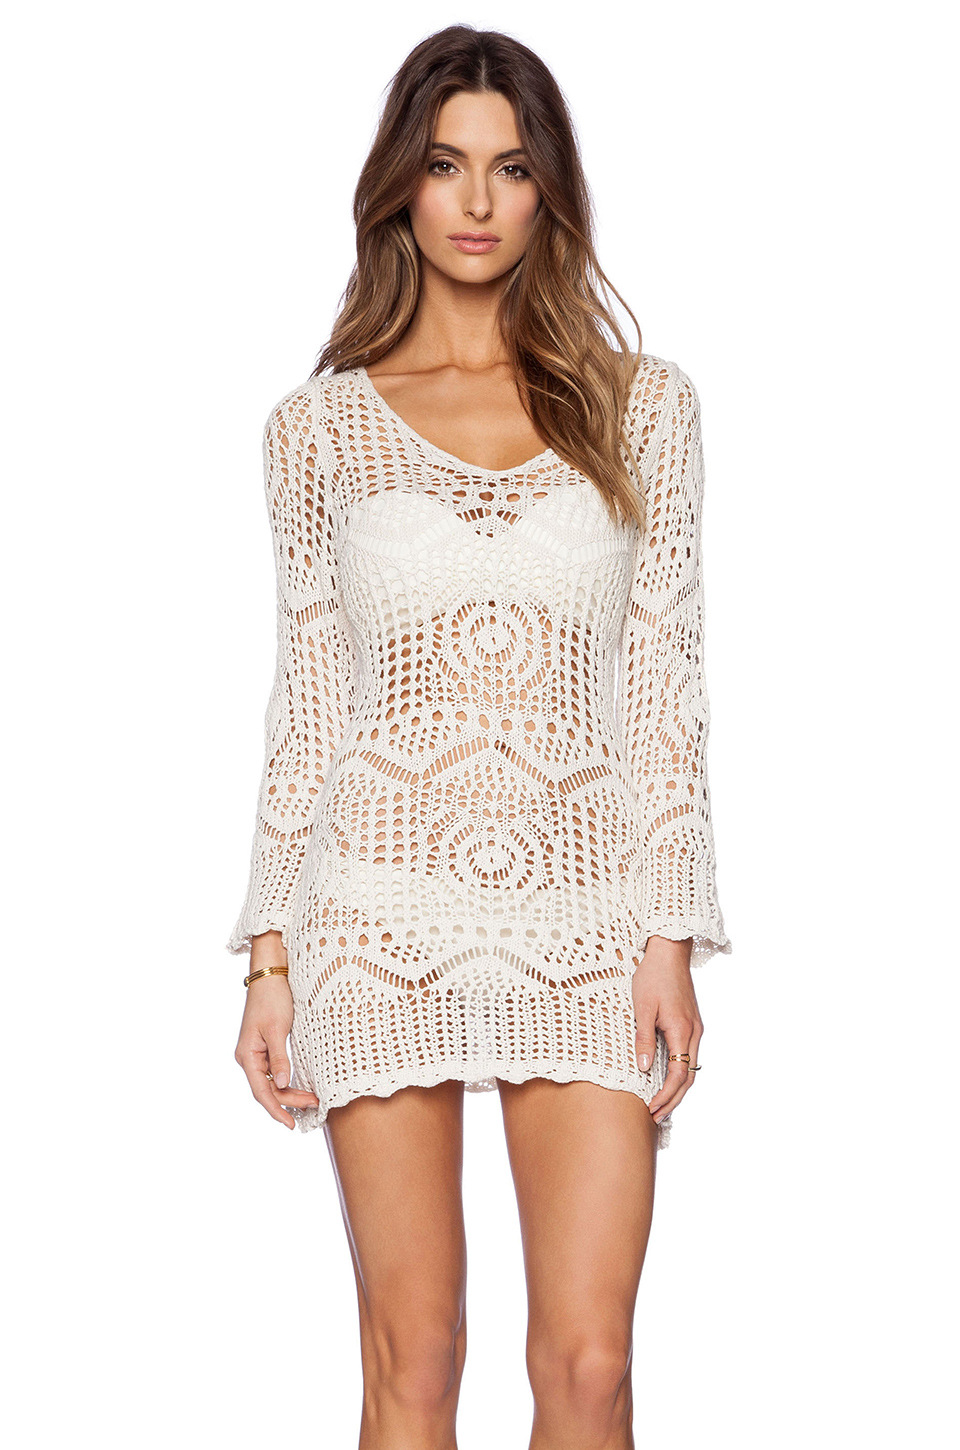 Free shipping & returns on beach cover-ups at hitseparatingfiletransfer.tk Browse our selection of swimsuit cover-ups, beach dresses & bikini cover-up from Becca, La .